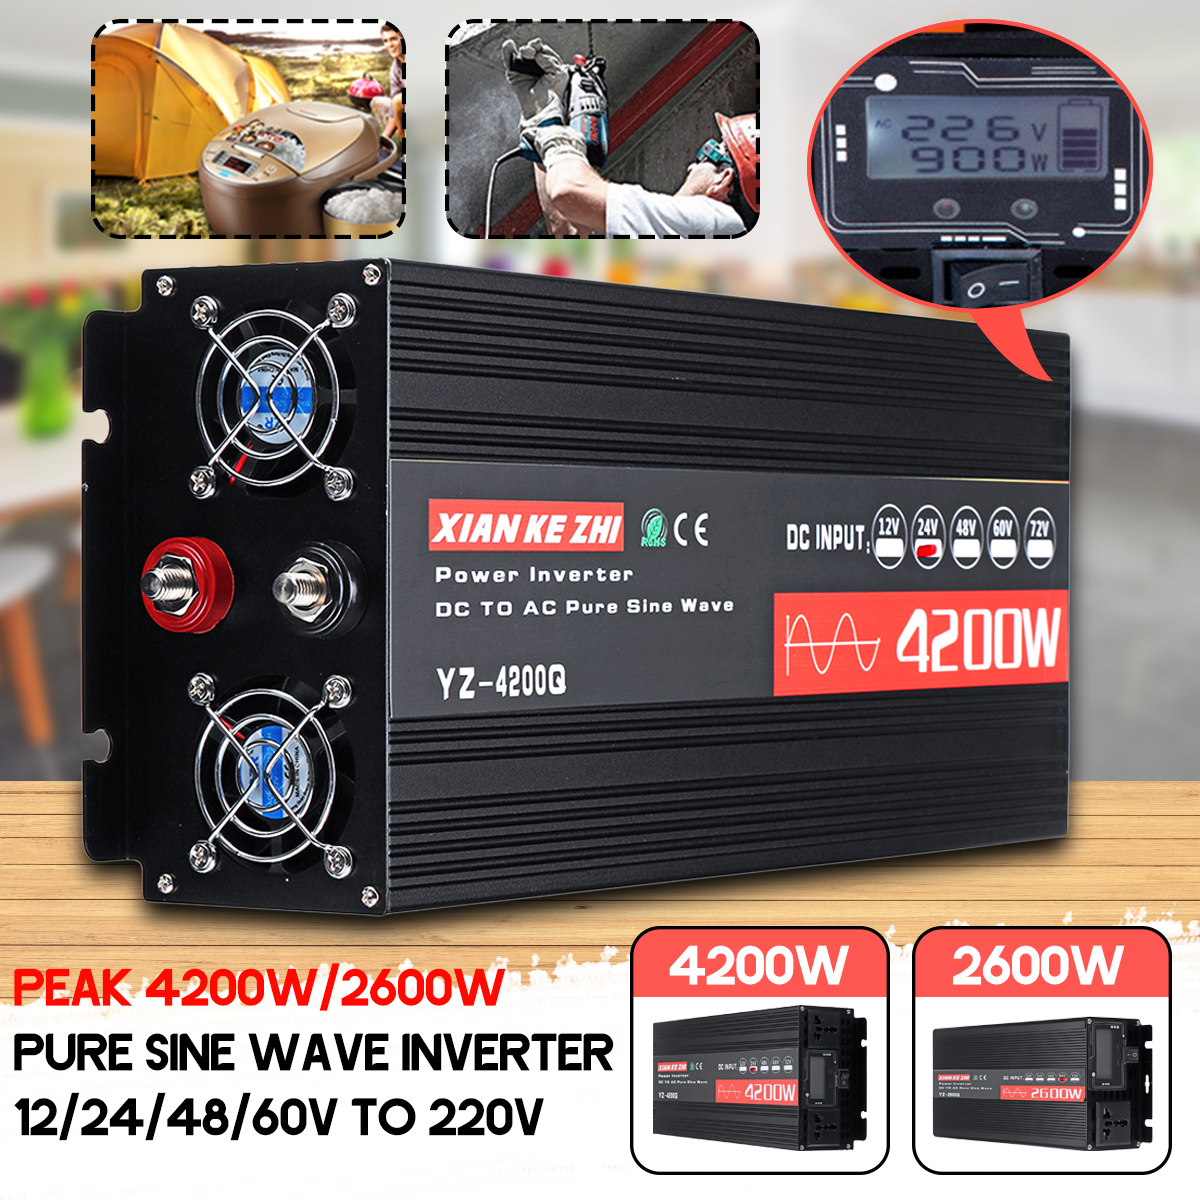 4200W/2600W LCD Display Pure Sine Wave Inverter 12/24/48/60V TO 220V Hpusehold Car USB High Power Inverter W/ 6 Protections Converter